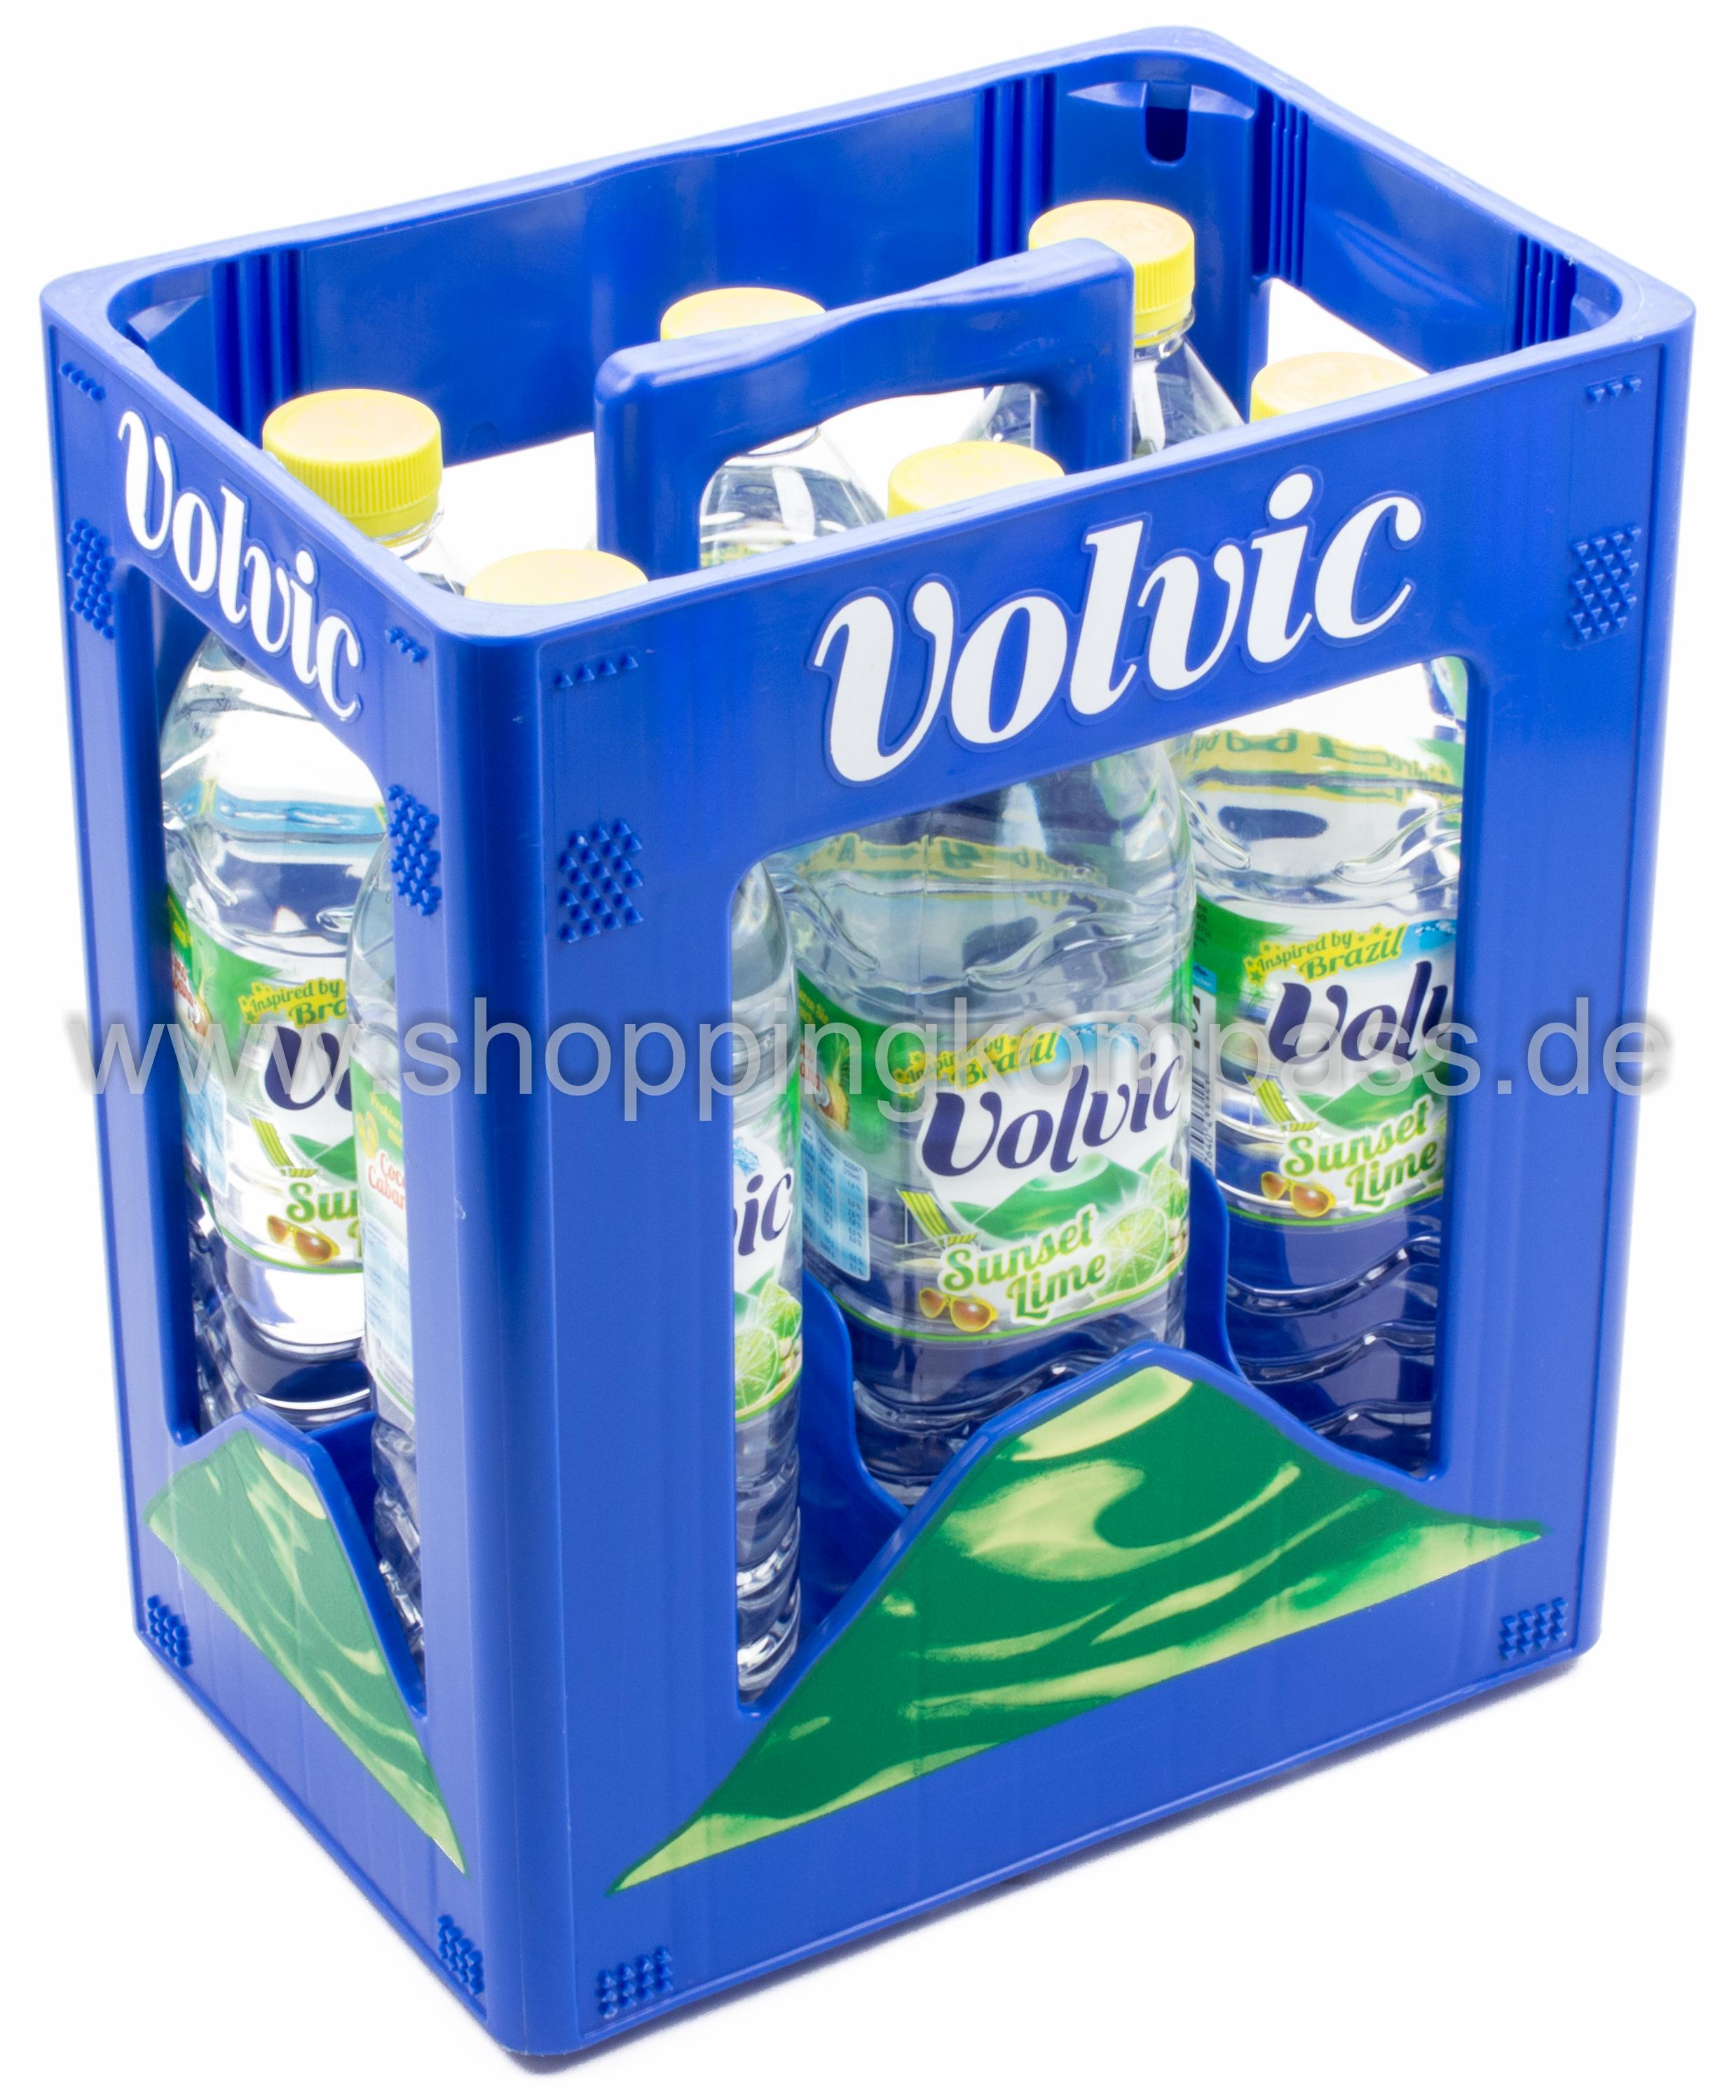 Volvic Sunset Lime Kasten 6 x 1,5 l PET Einweg